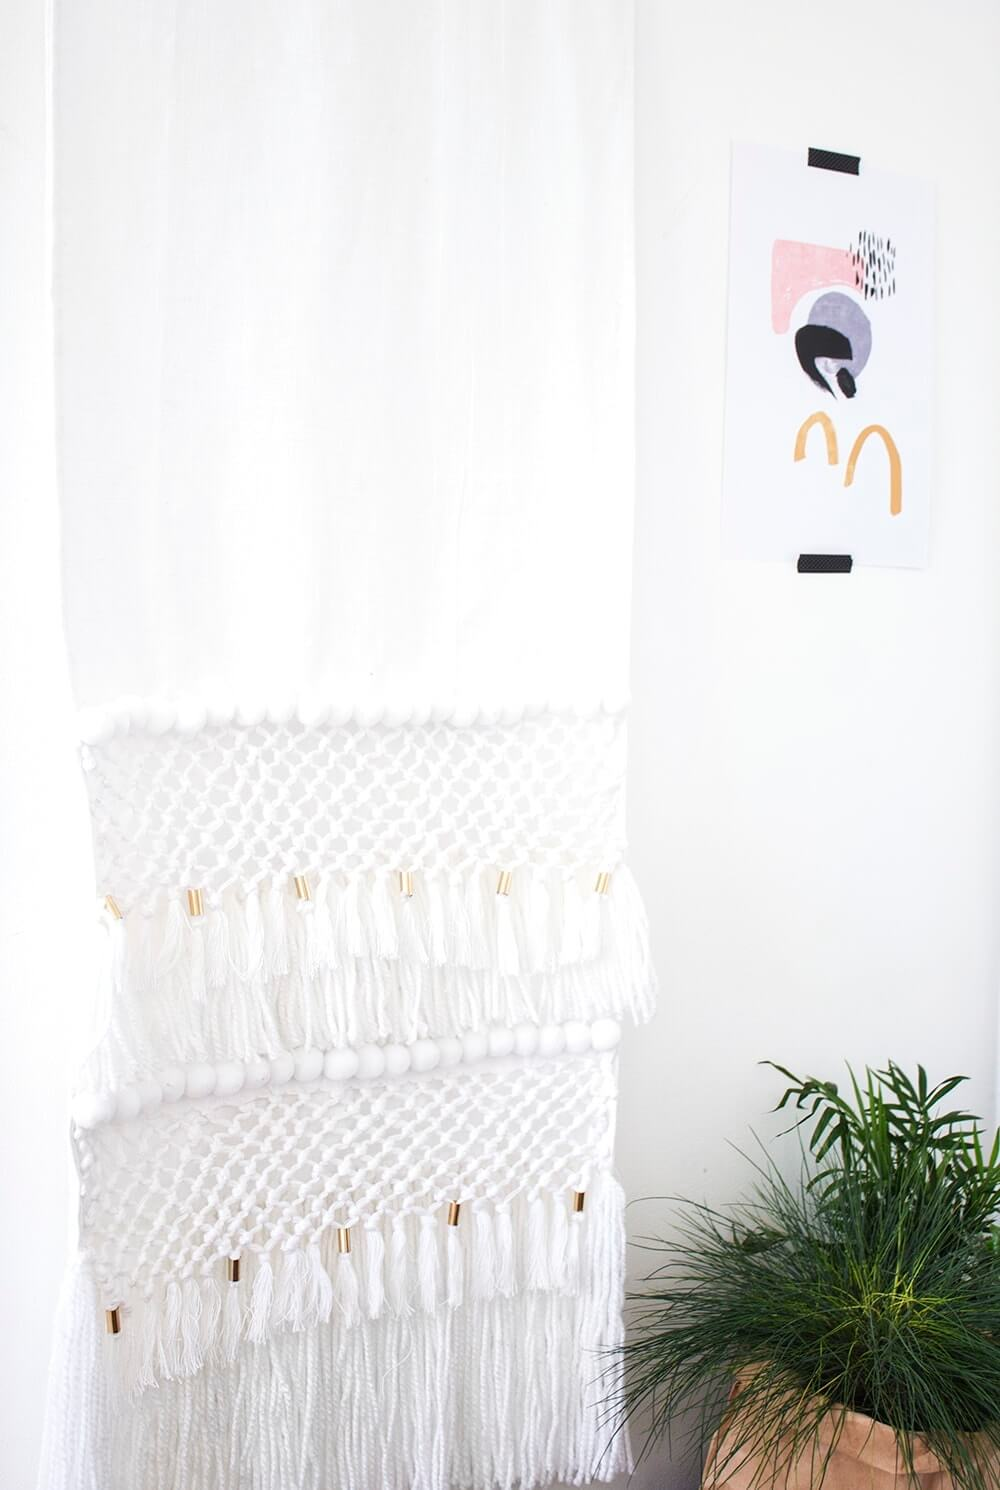 Beautiful No-Weave Tapestry for Negative Wall Space